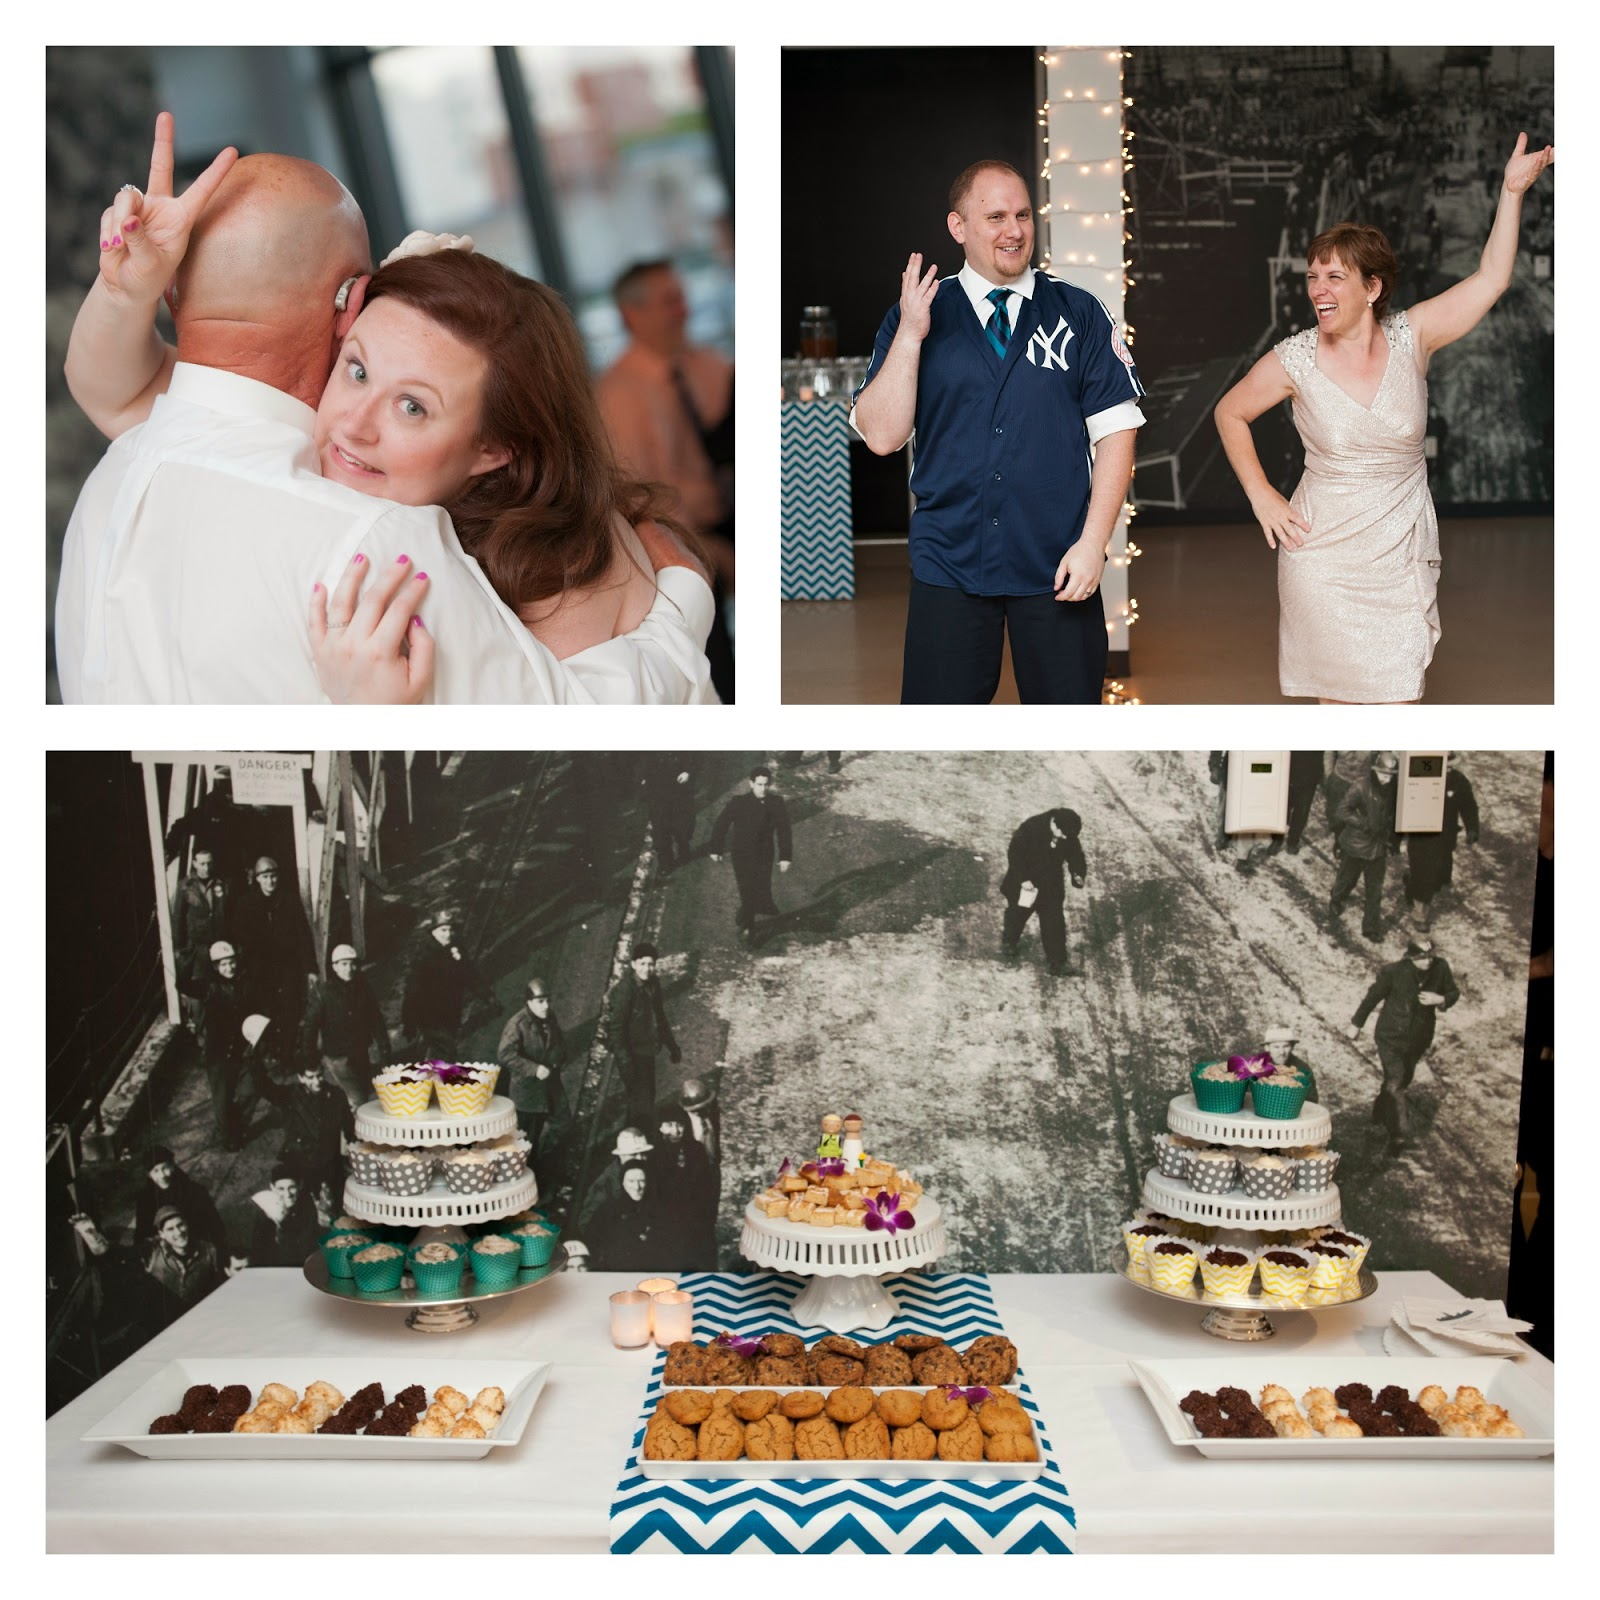 teal & yellow wedding, brooklyn wedding, ny wedding, ny wedding planner, echo-friendly wedding, building 92, brooklyn navy yard